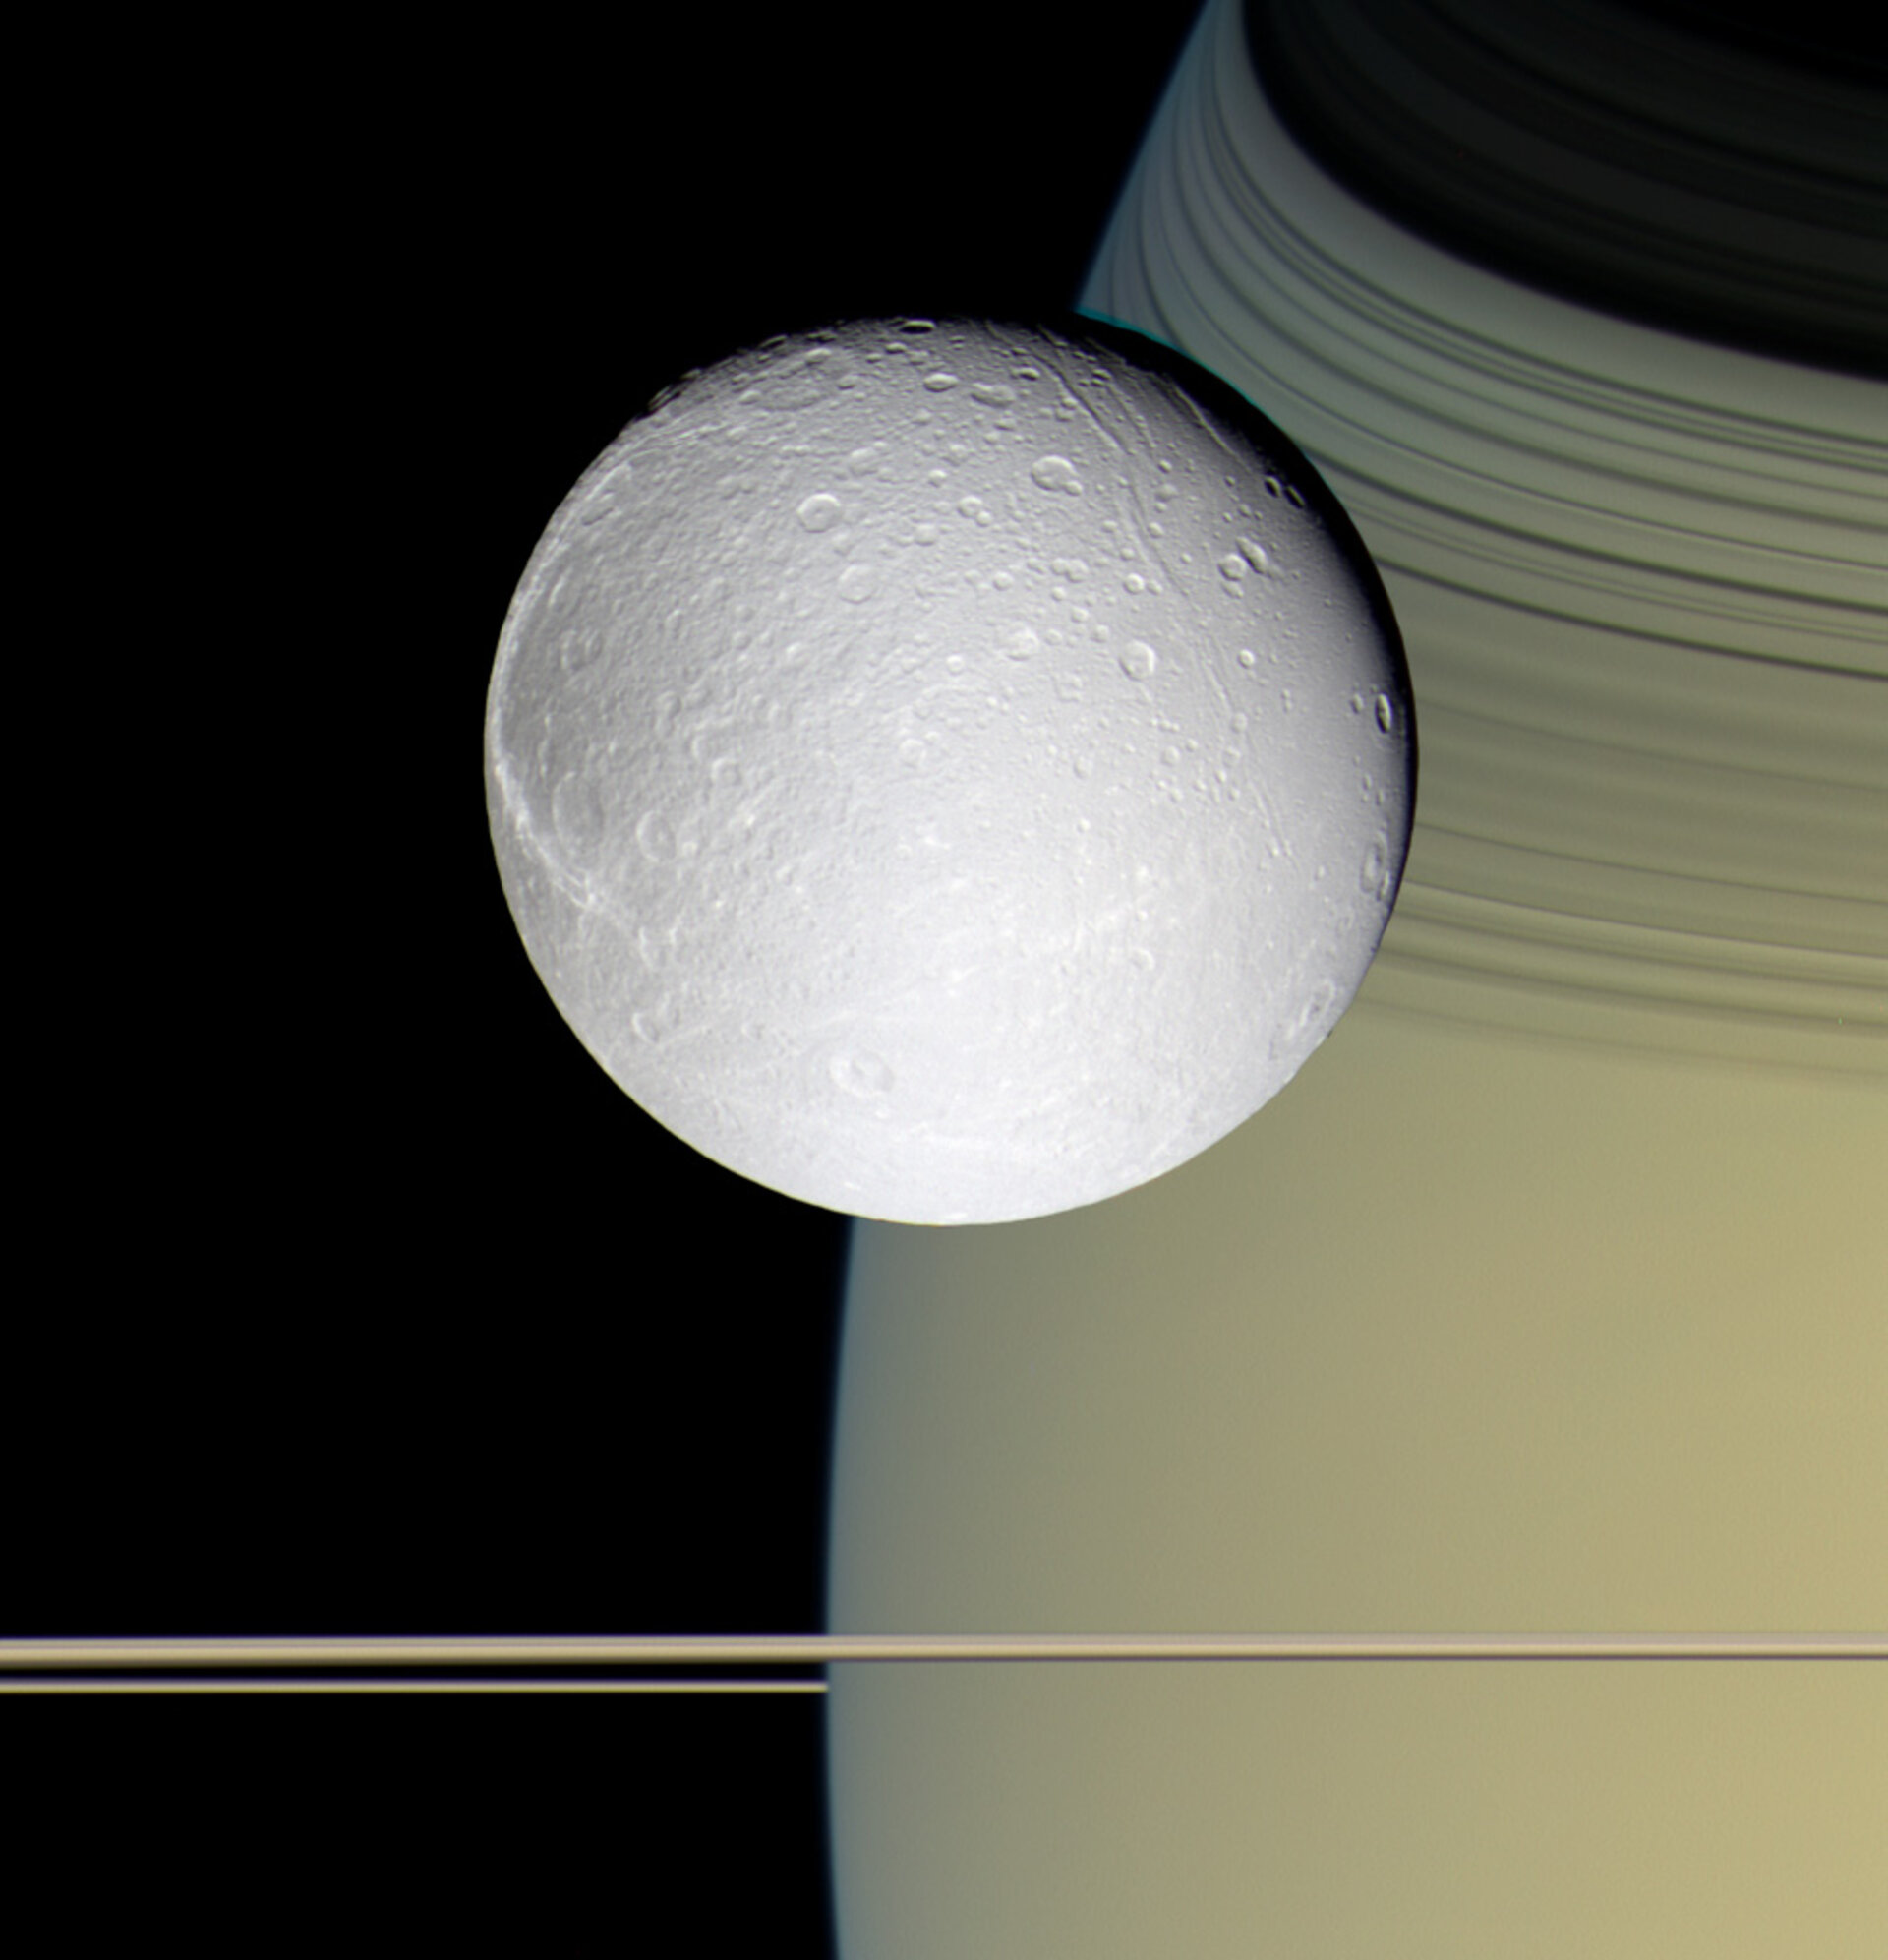 View of Dione with Saturn and rings as background